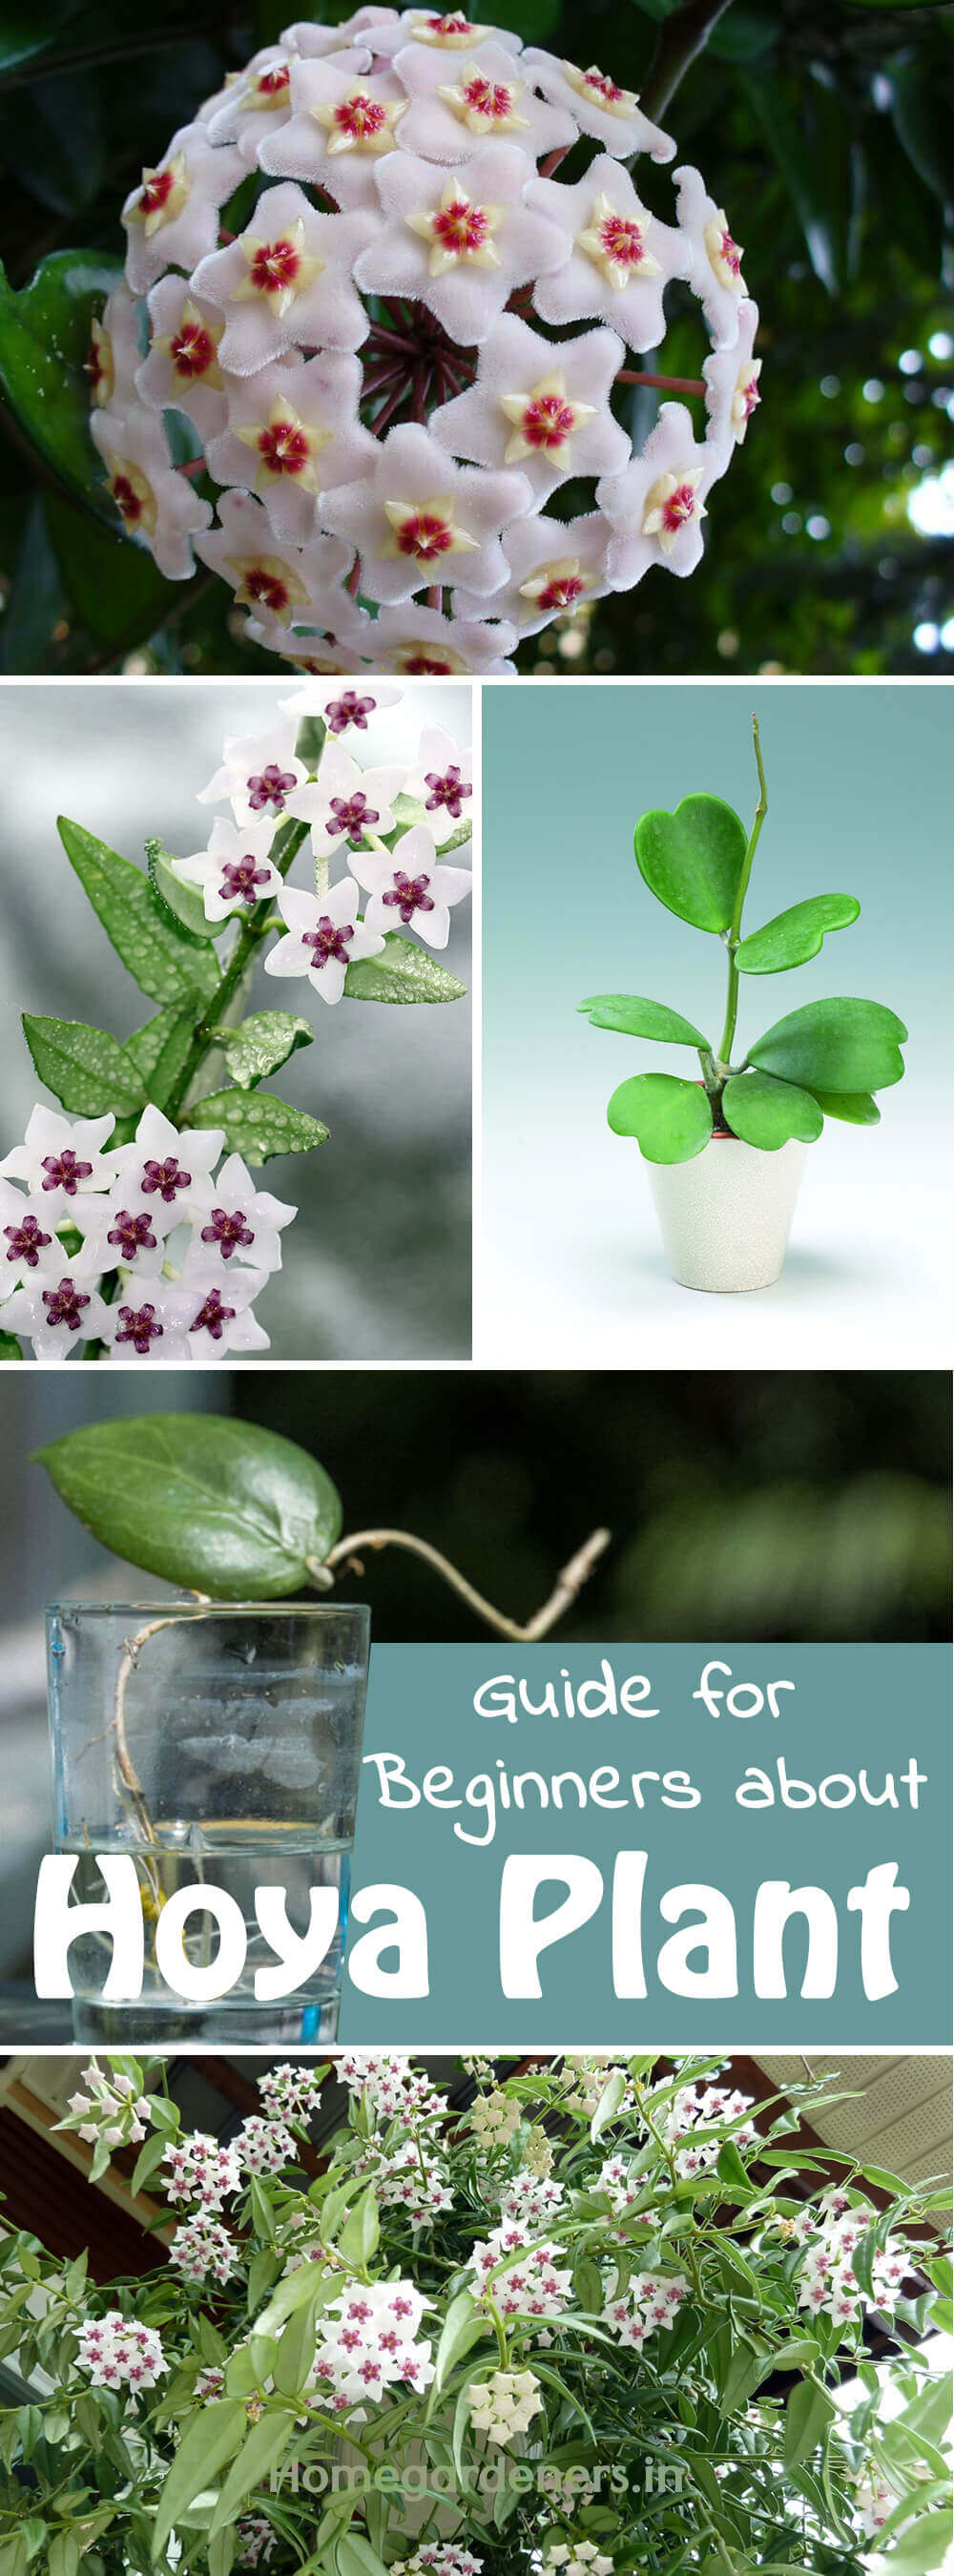 The Complete Guide For Beginners About Hoya Plant Home Gardeners